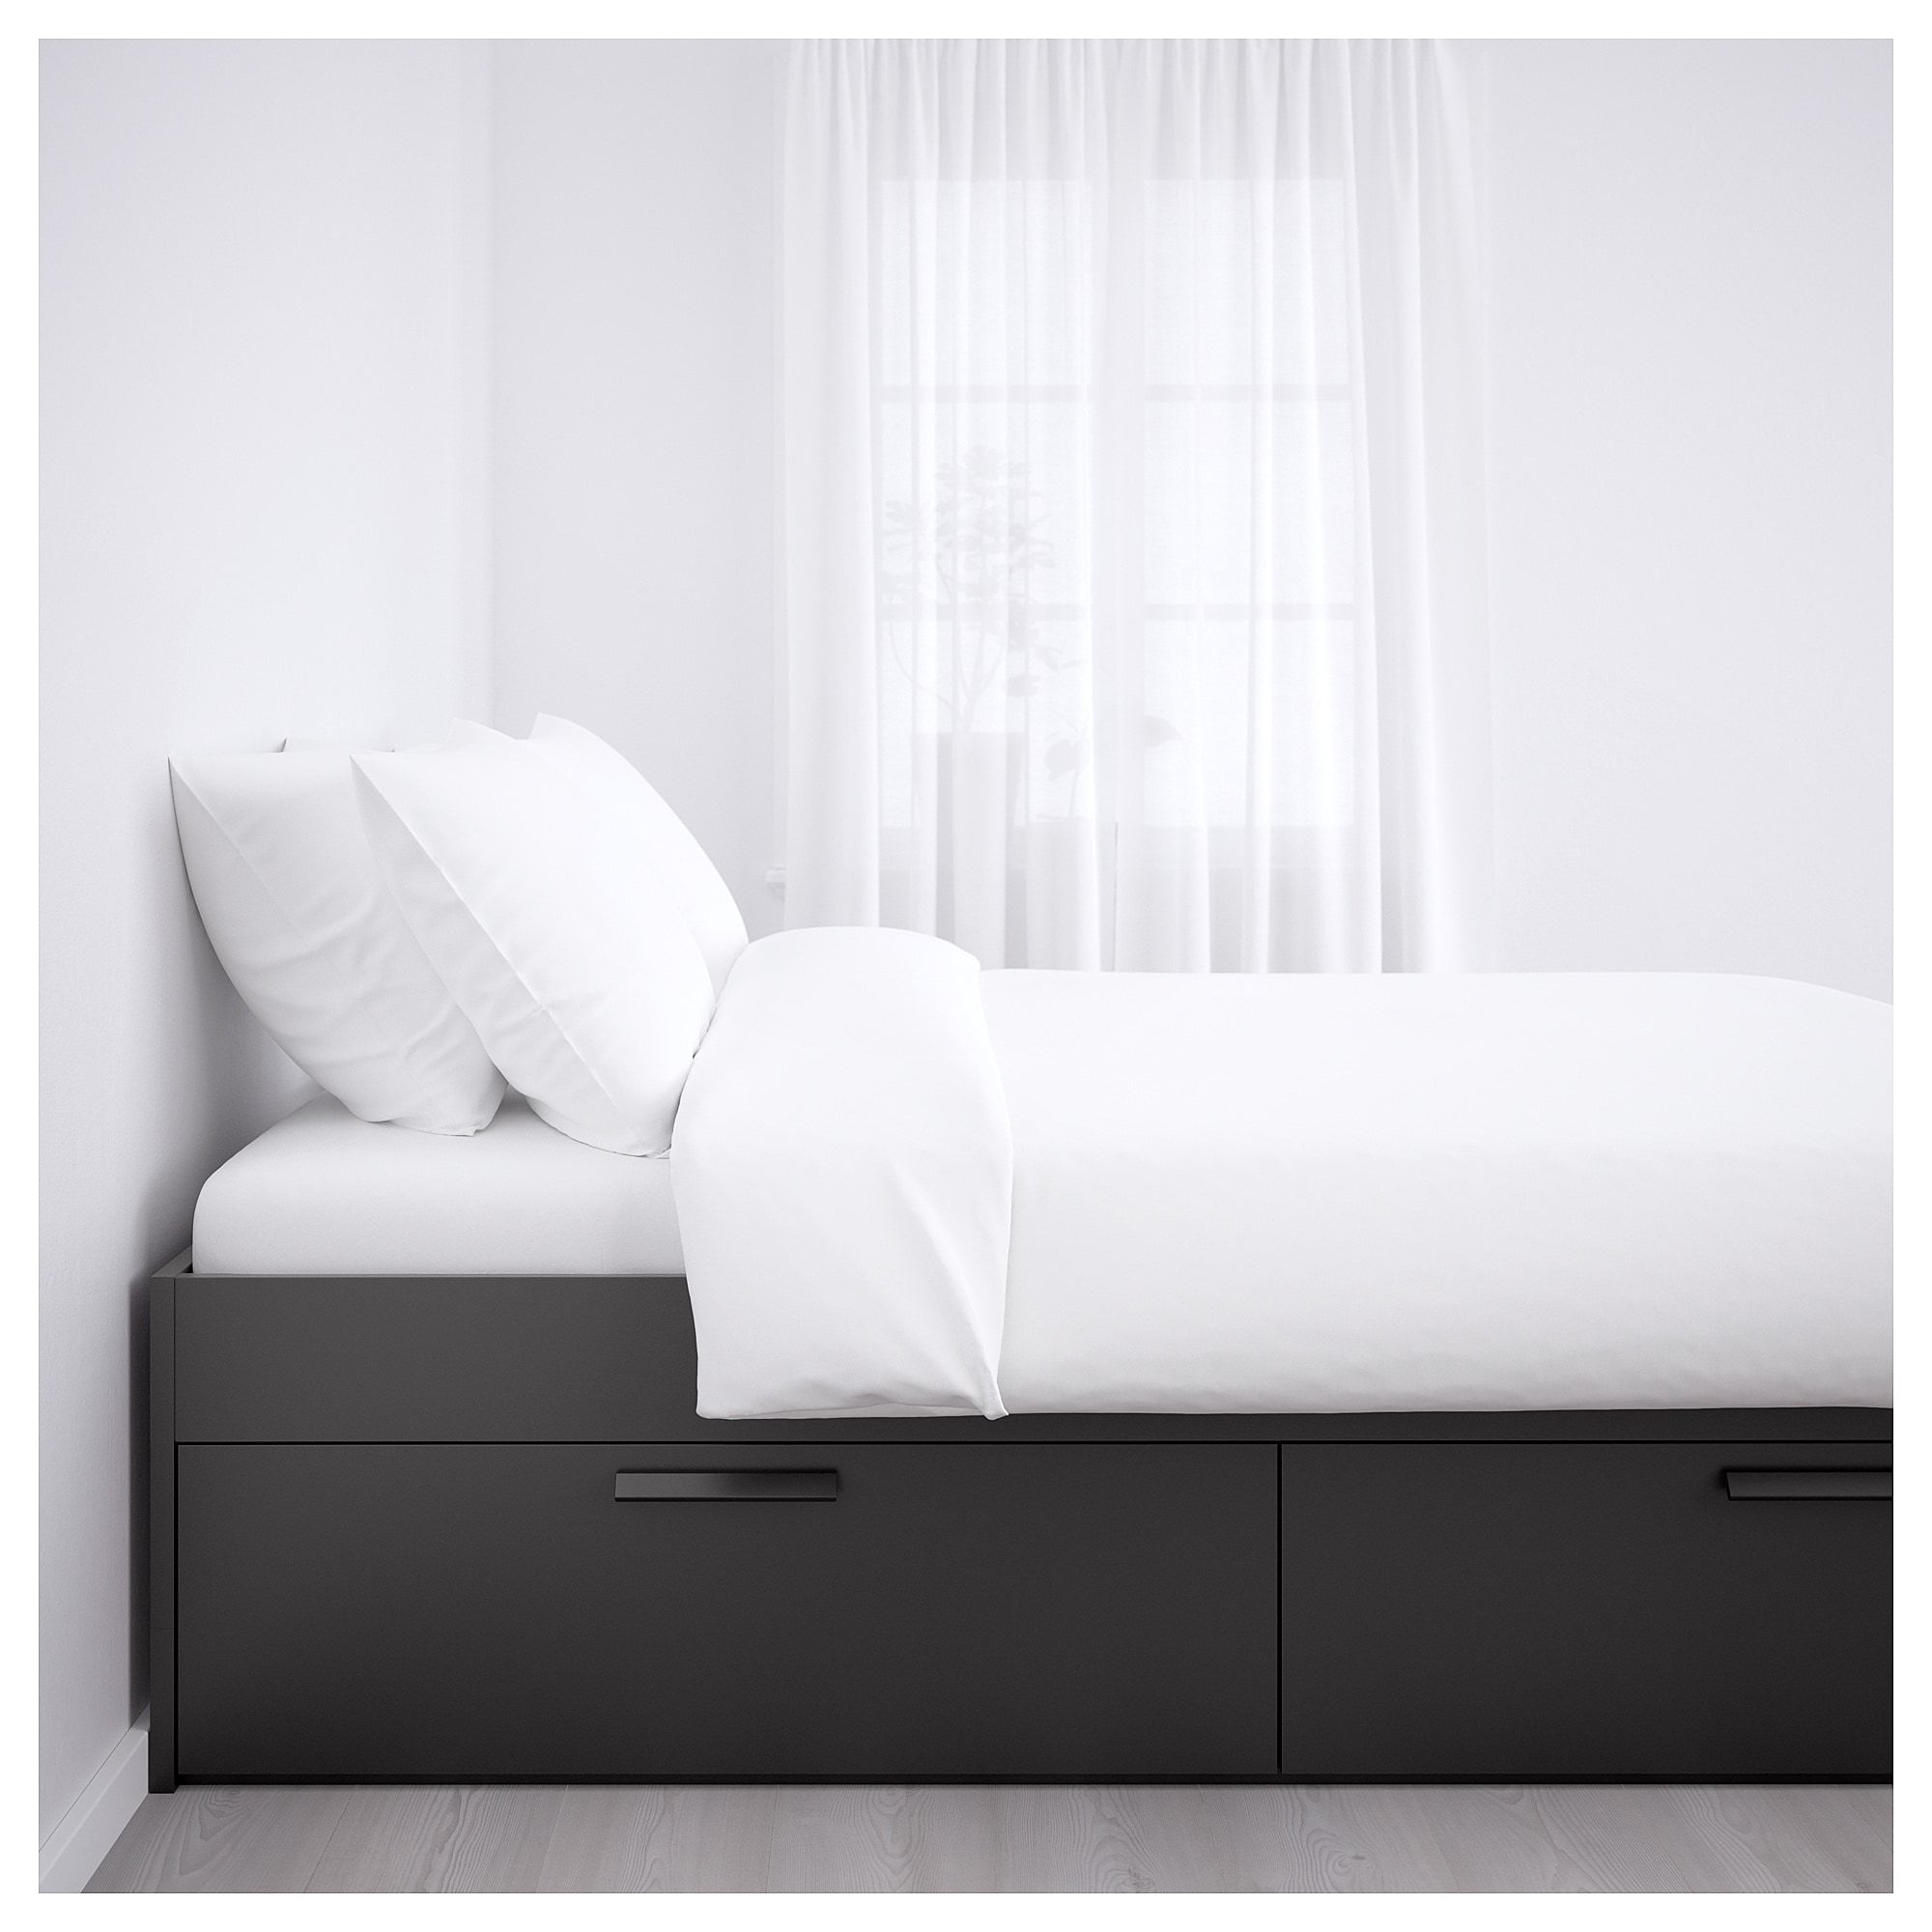 Ikea Brimnes Black Leirsund Bed Frame With Storage Bed Frame